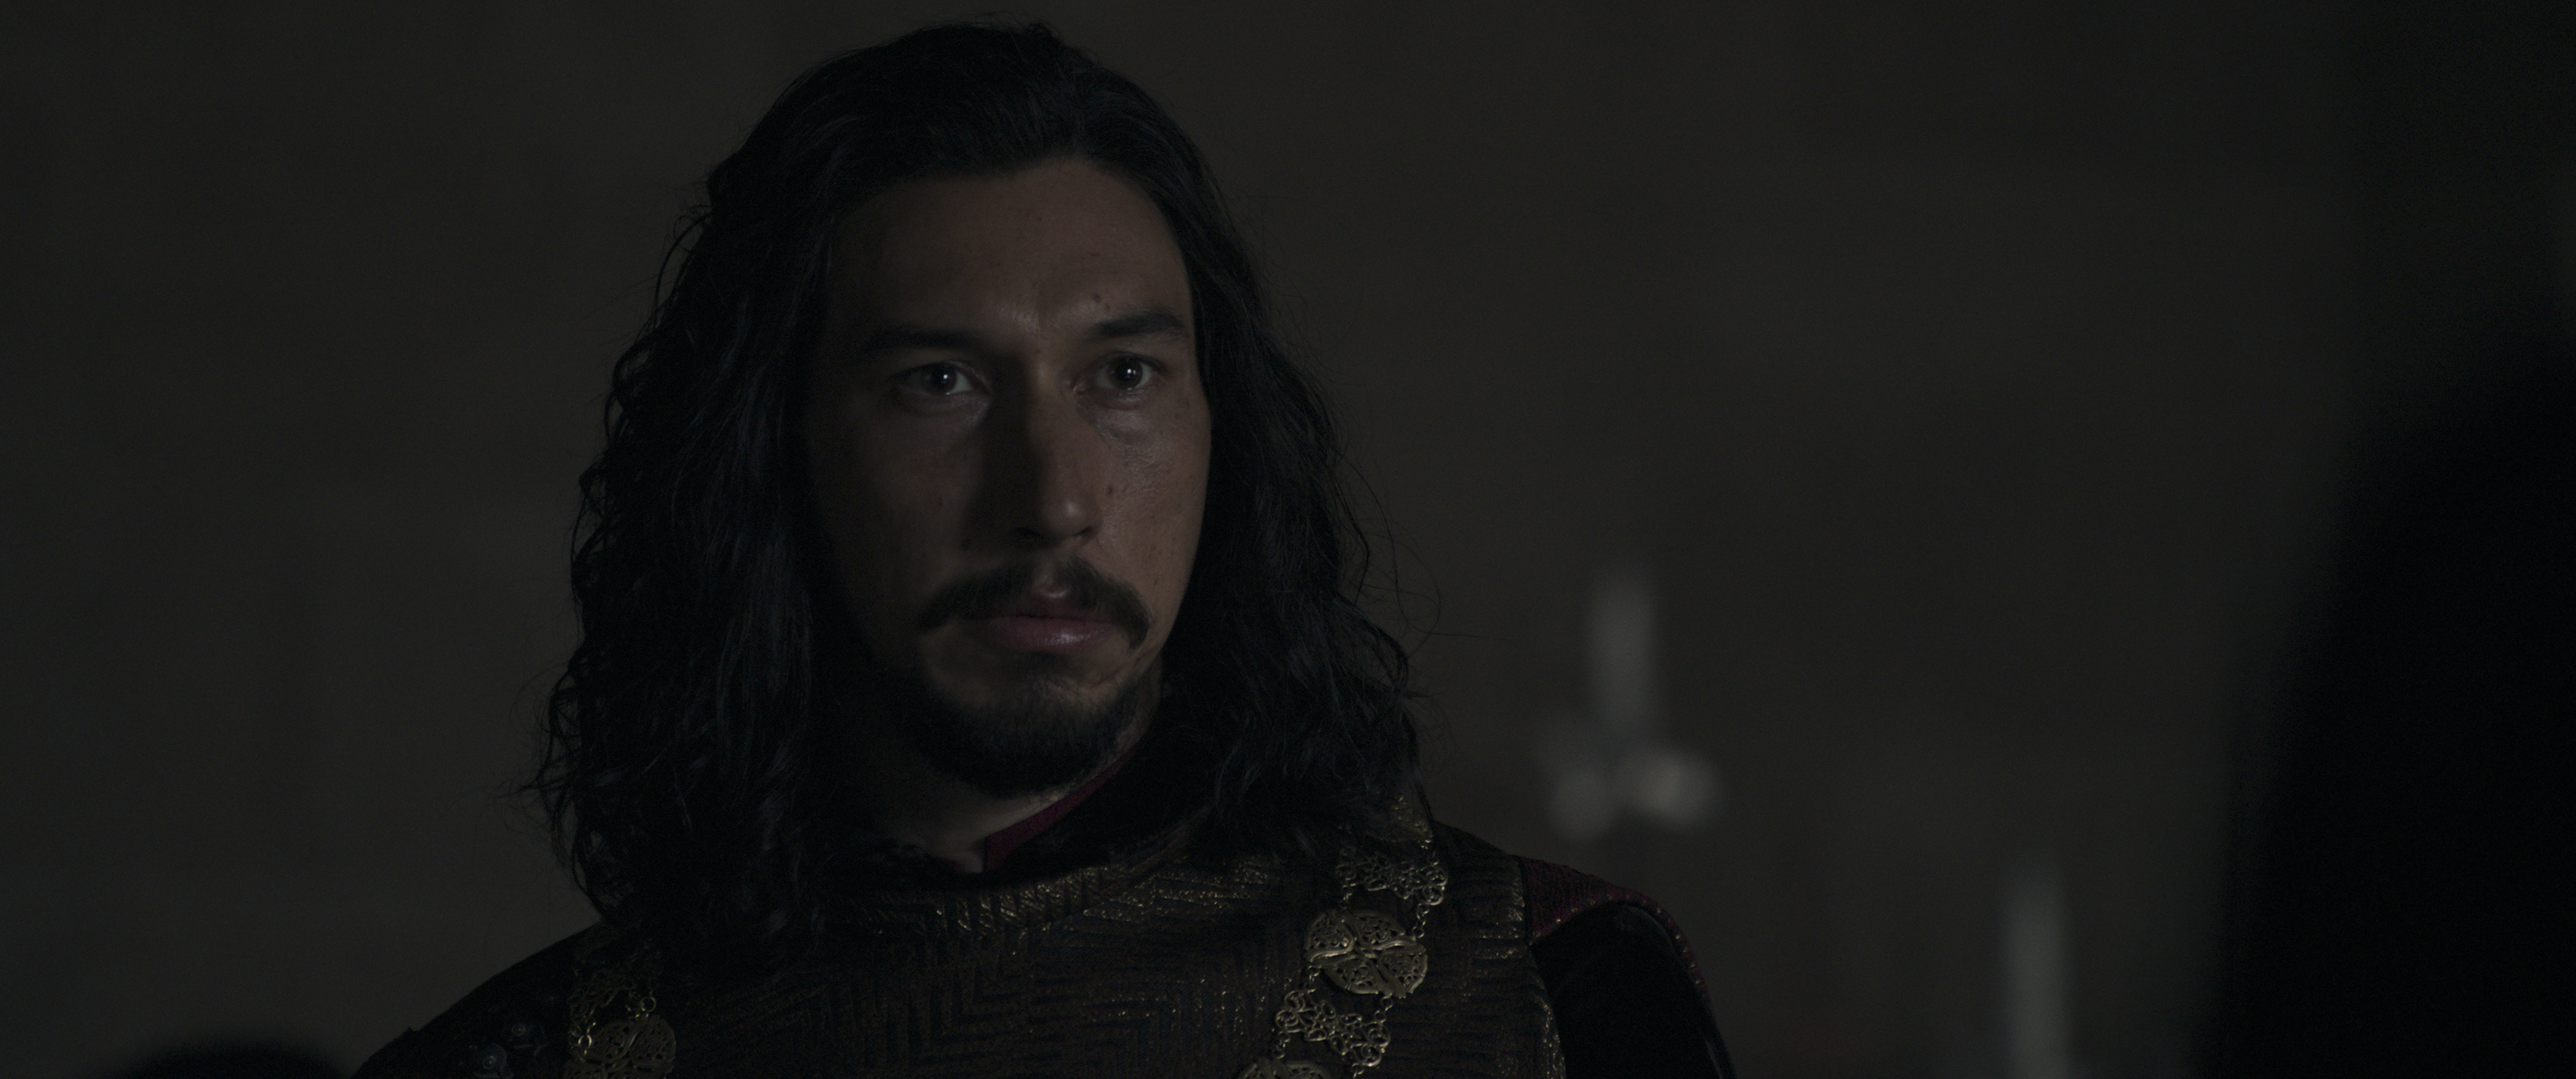 Adam Driver as Jacques LeGris in 20th Century Studios' THE LAST DUEL. © 2021 20th Century Studios. All Rights Reserved.